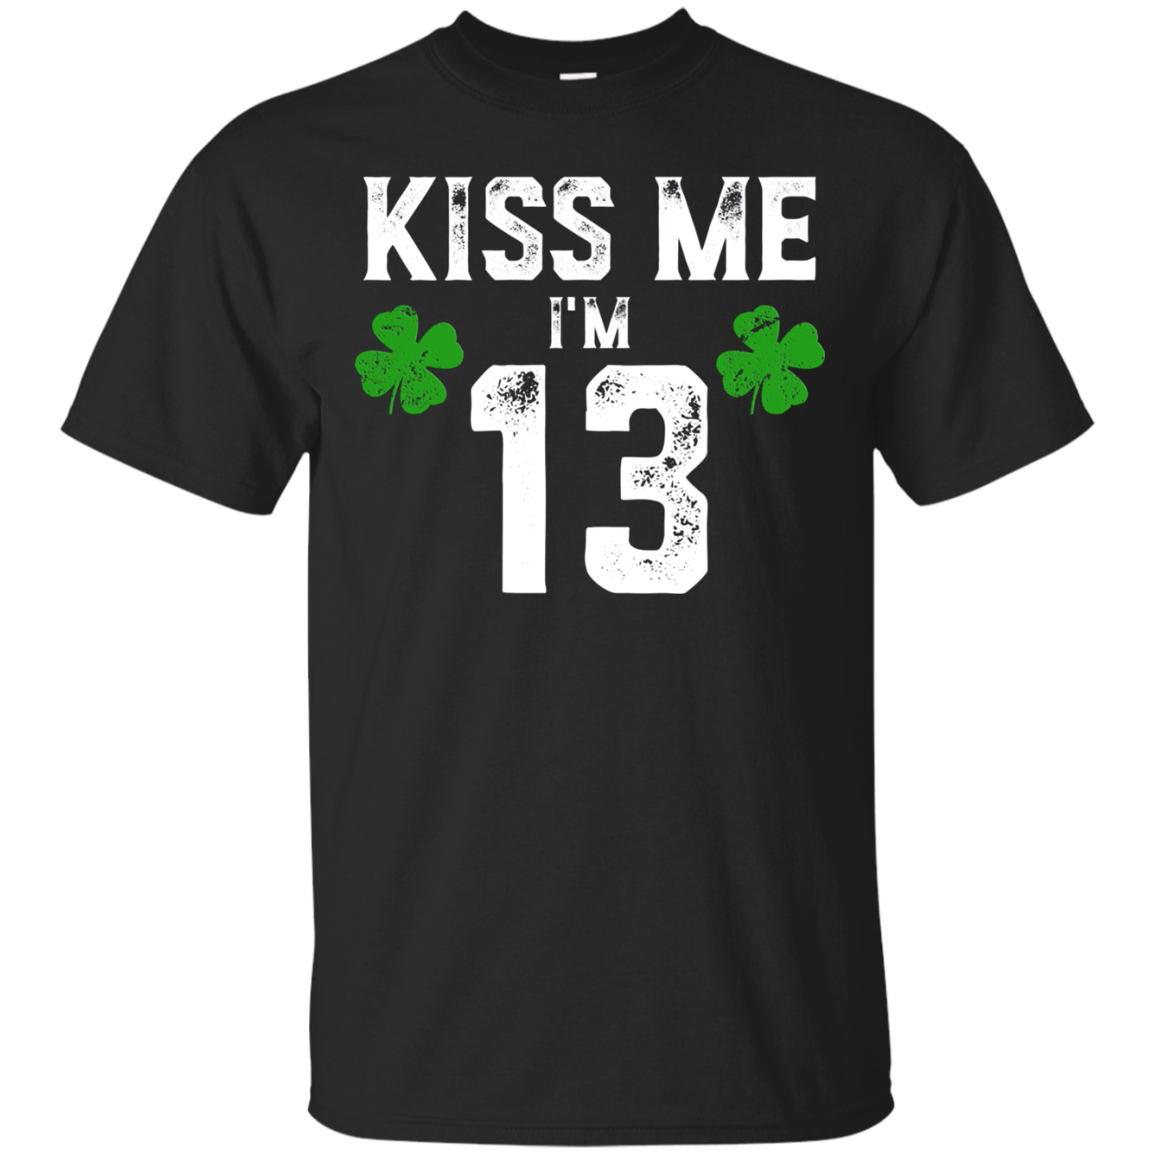 Kiss Me I'm 13 Shirt St Pattys Day Birthday Gift